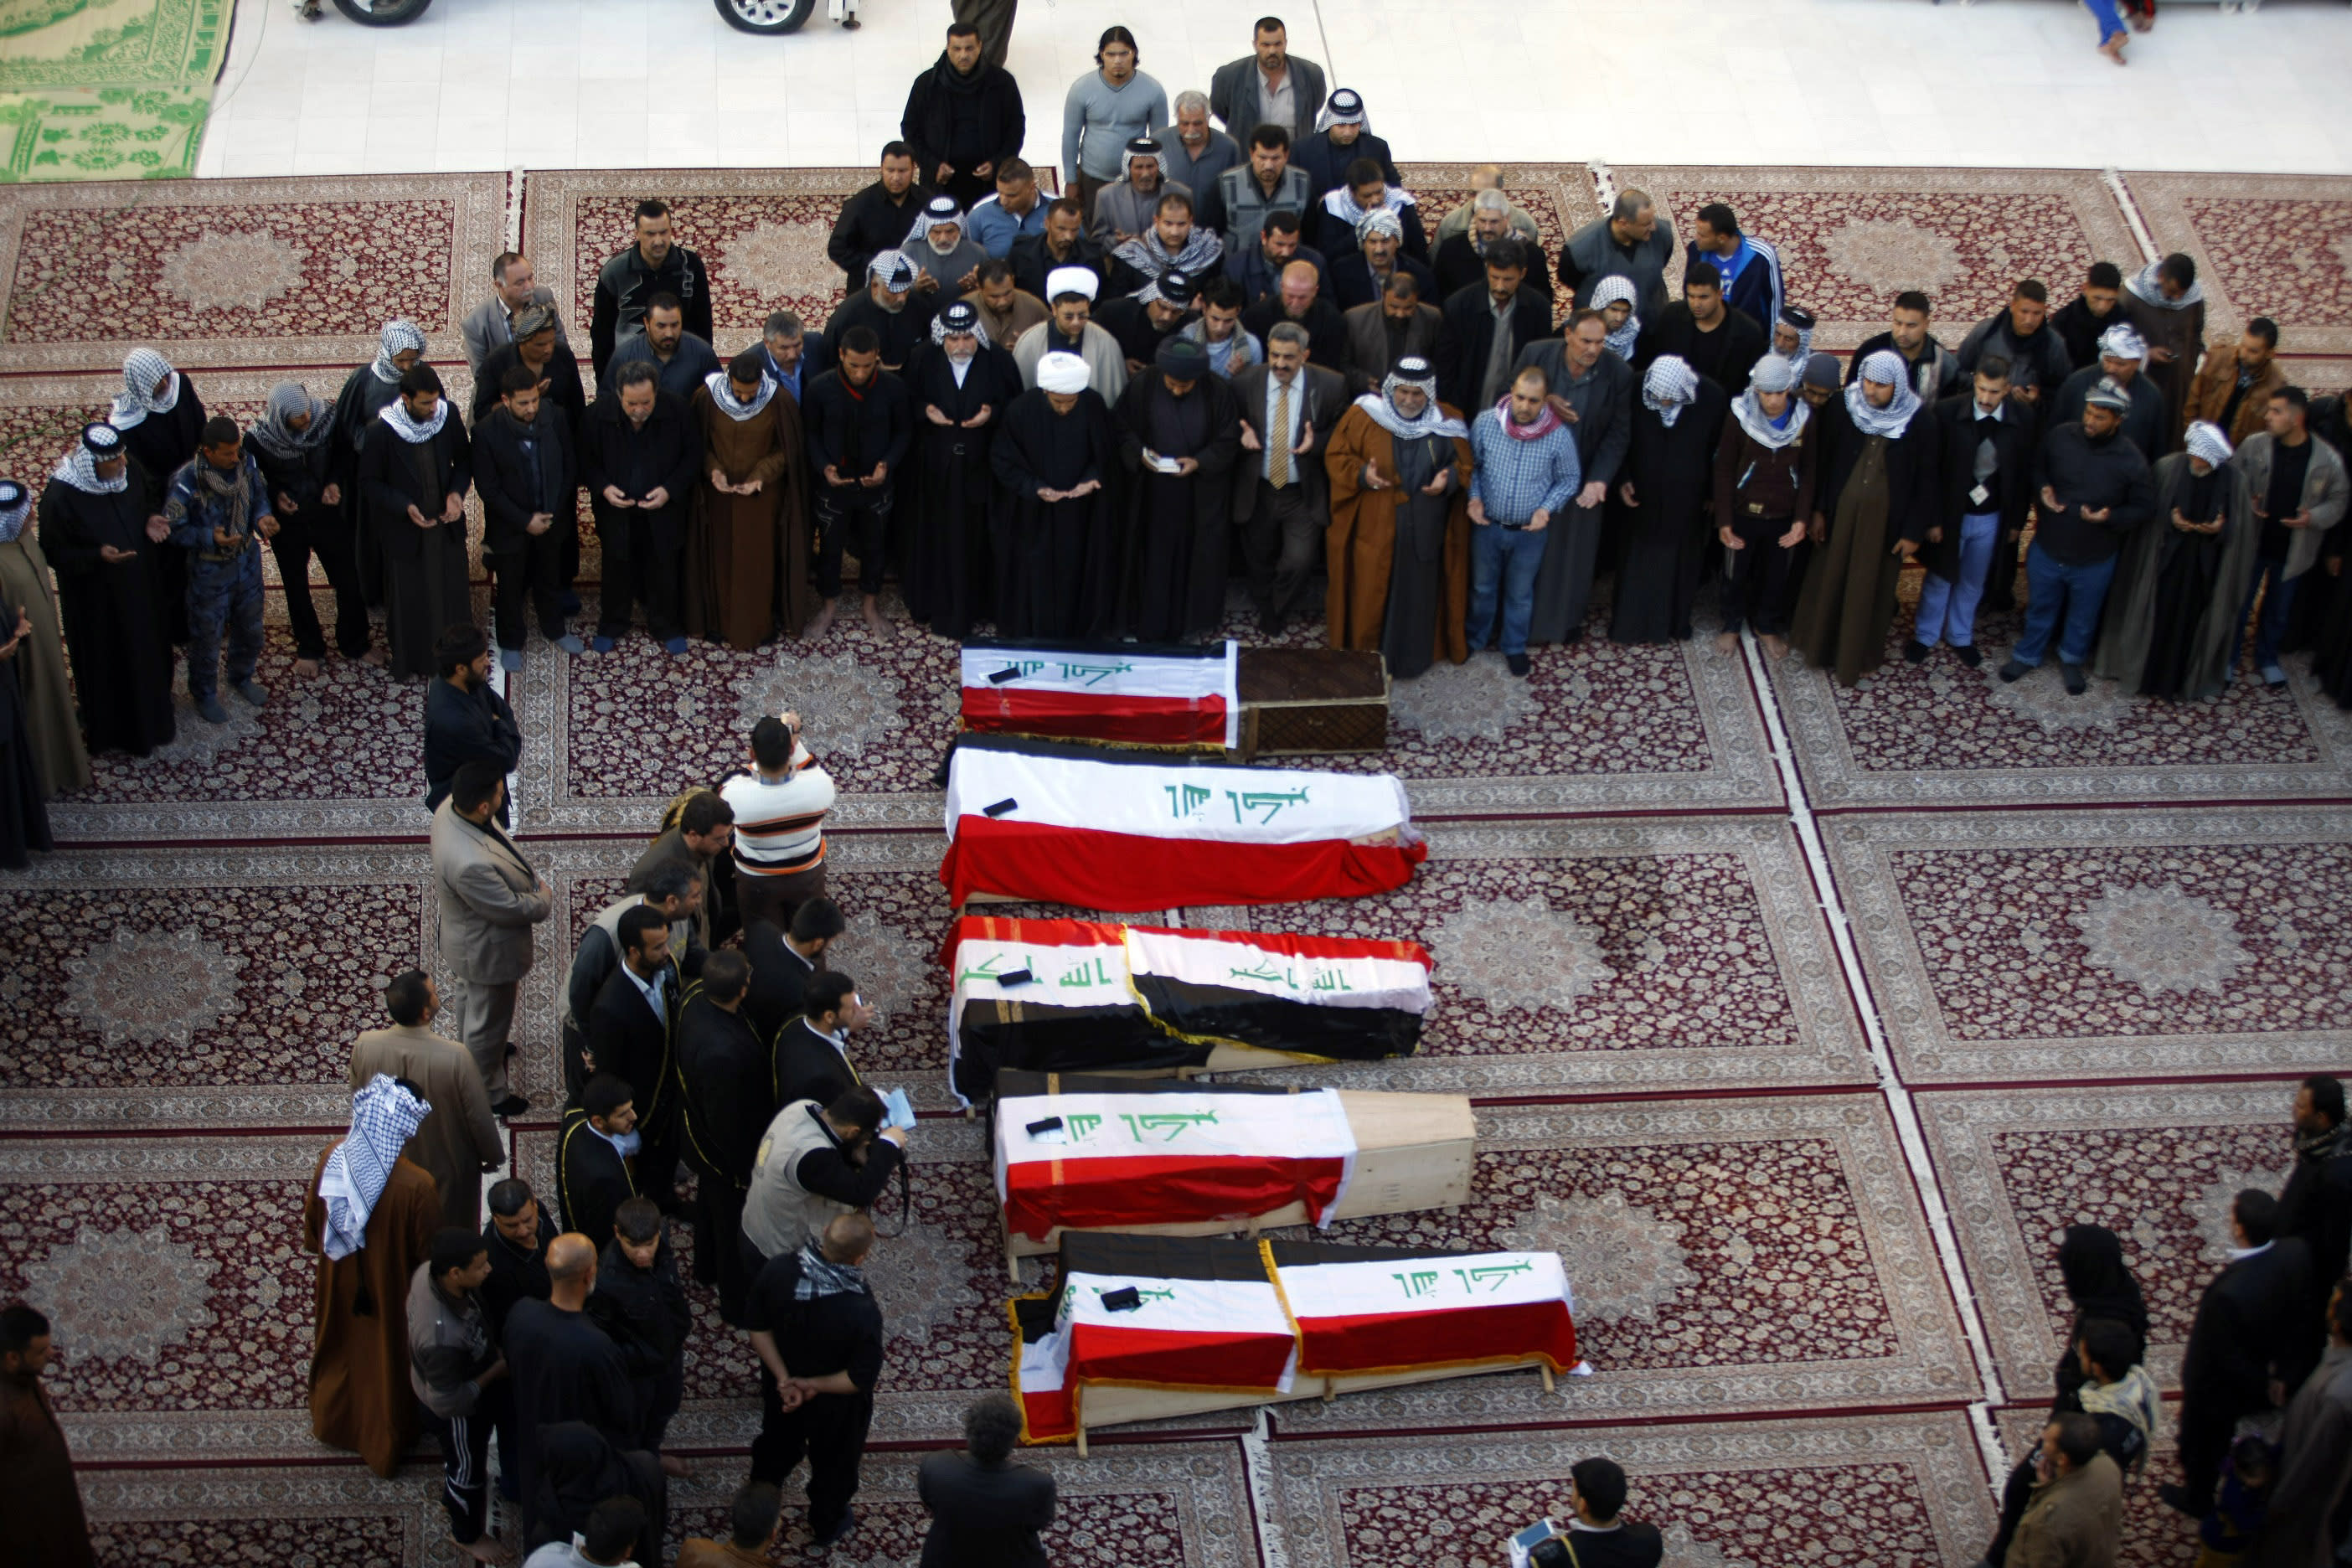 Mourners pray over coffins draped with Iraqi flags for Iraqi soldiers killed by al-Qaida militants in Anbar province during their funeral procession inside the shrine of Imam Ali in Najaf, 100 miles (160 kilometers) south of Baghdad, Iraq, Tuesday, Jan. 21, 2014. Security forces on Monday found the bodies of four soldiers from an elite special forces unit who were captured by militants near Fallujah about two weeks ago. The executed bodies were found in al-Bubali village one day after it was retaken by Iraqi troops.(AP Photo/Jaber al-Helo)